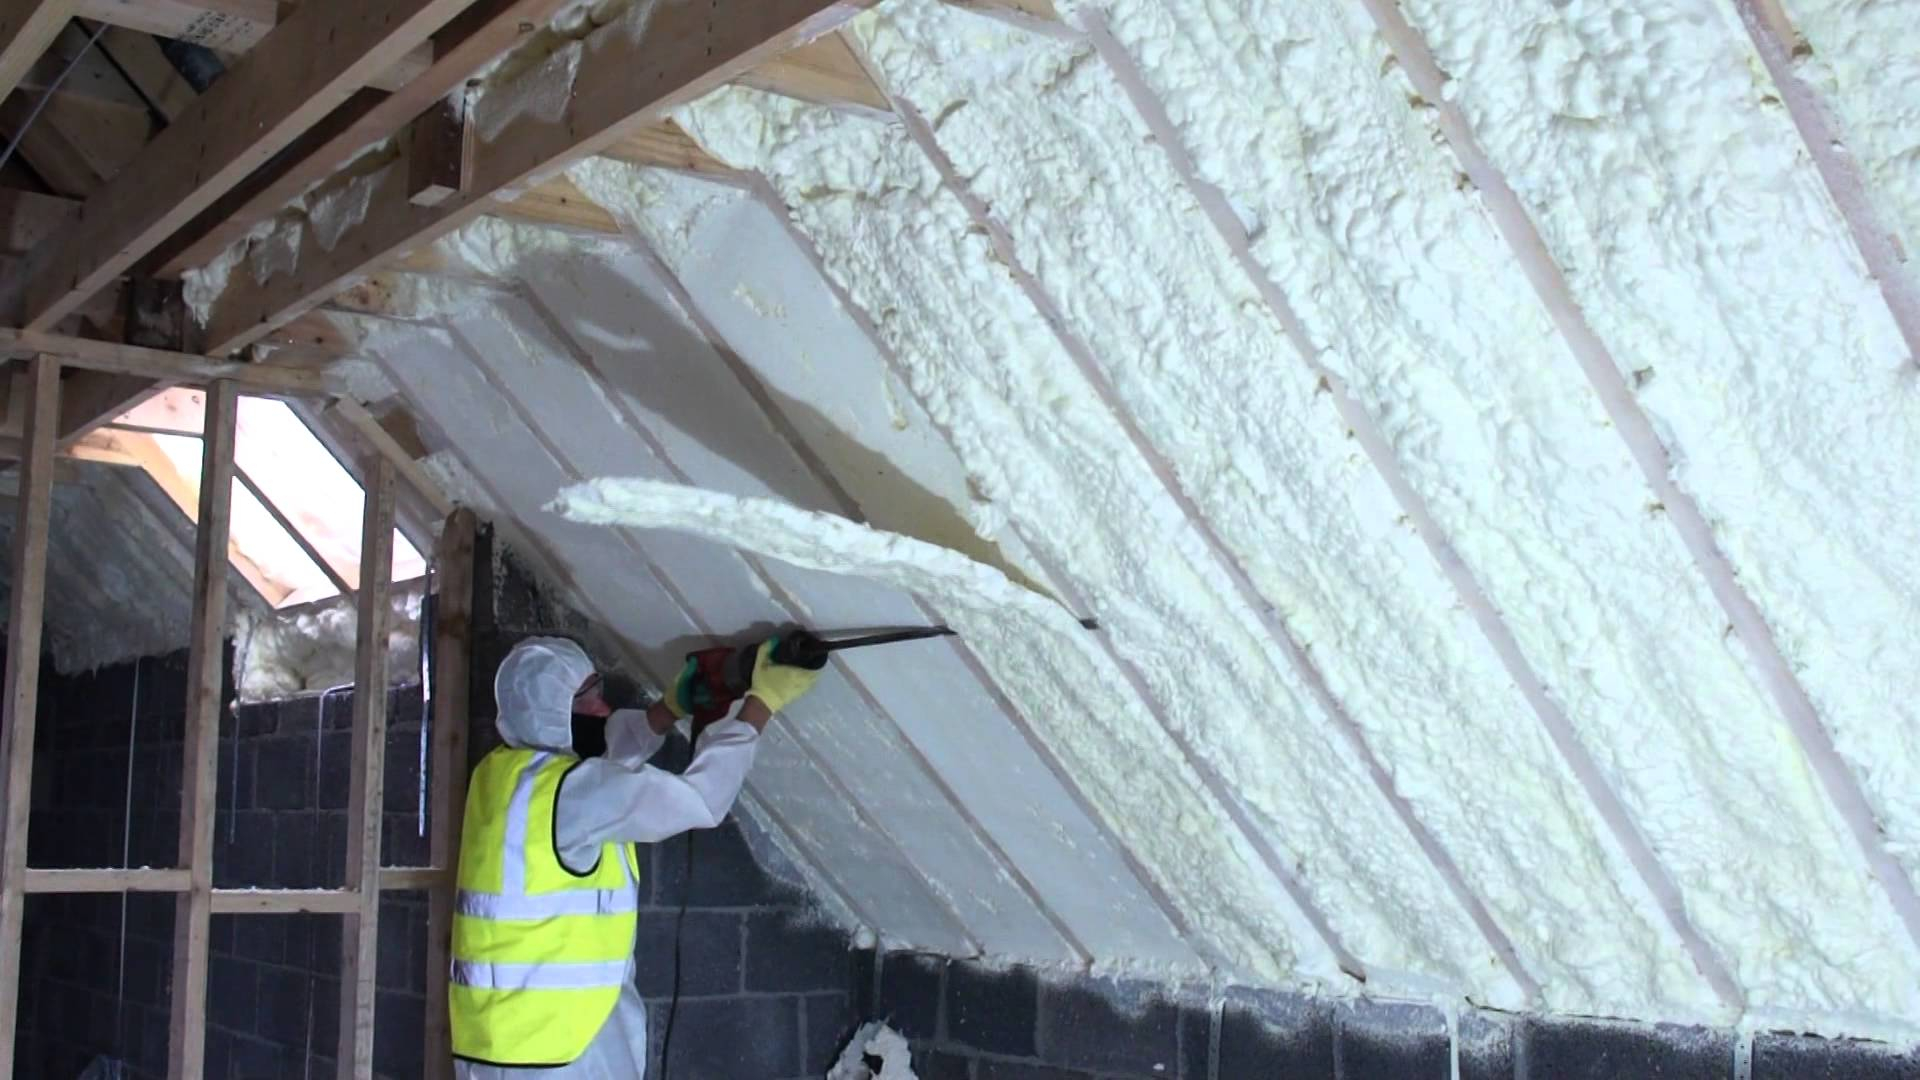 Spray foam insulation for attic roof attic ideas spray foam of attic using fusion sprayfoam insulation being cut in size 1920 x 1080 solutioingenieria Image collections